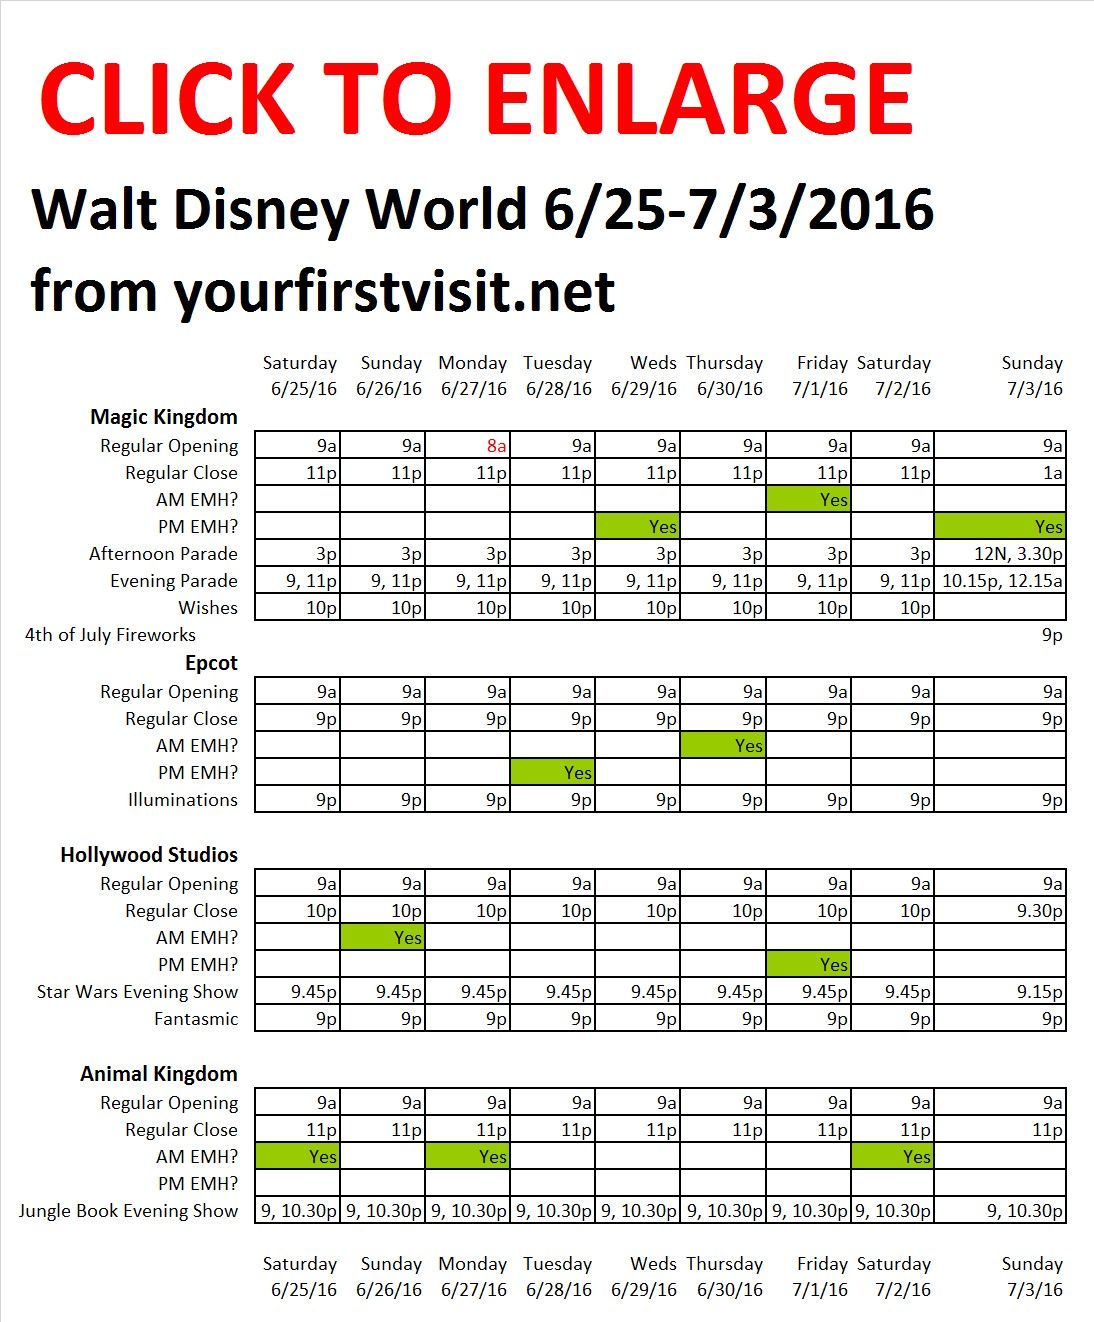 Disney World 6-25 to 7-3-2016 from yourfirstvisit.net